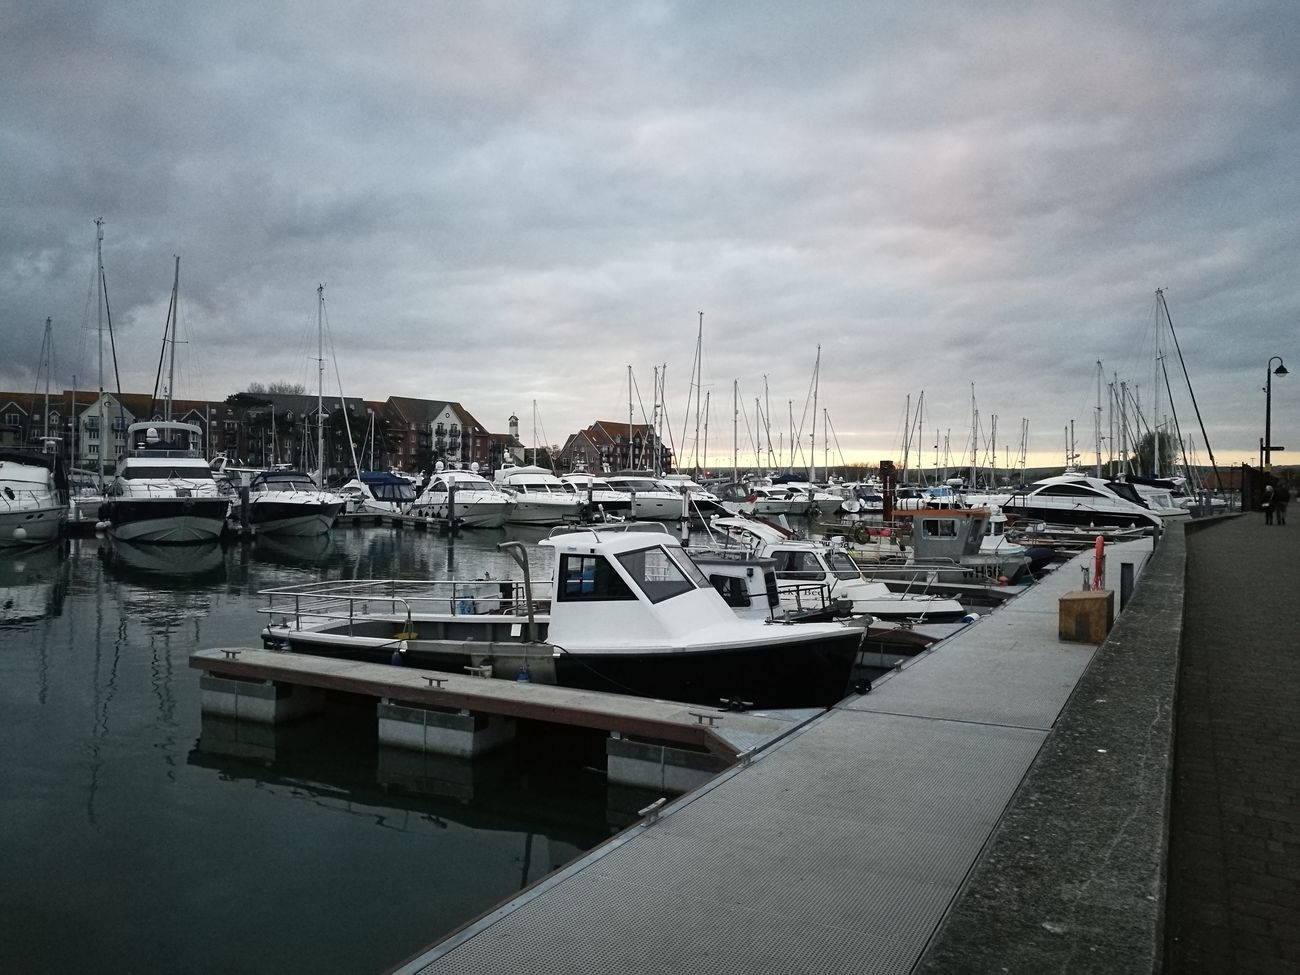 Nautical Vessel Harbor Water Moored Sea Marina No People Outdoors Sky Sailboat Yacht Pier Reflection Mode Of Transport Travel Destinations Tranquility Nature Landscape Day Weymouth Dorset Weymouth For Life Home